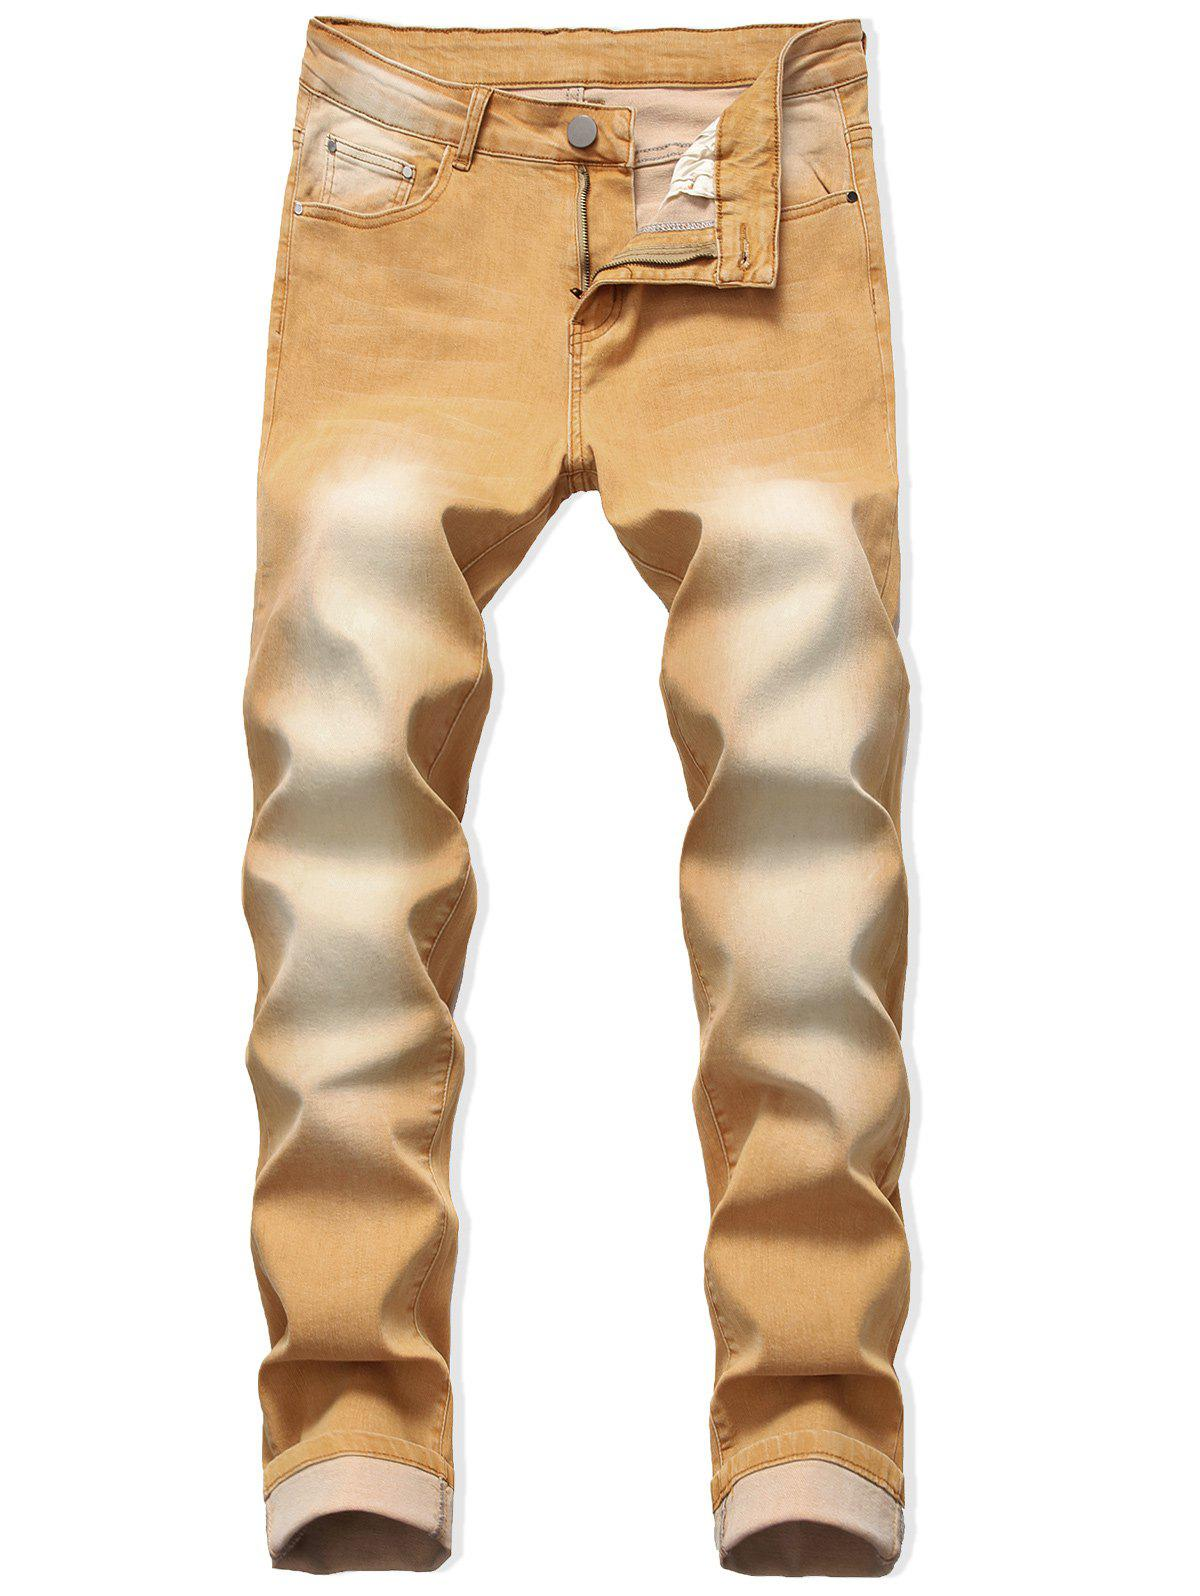 Shop Zip Fly Long Faded Wash Casual Jeans